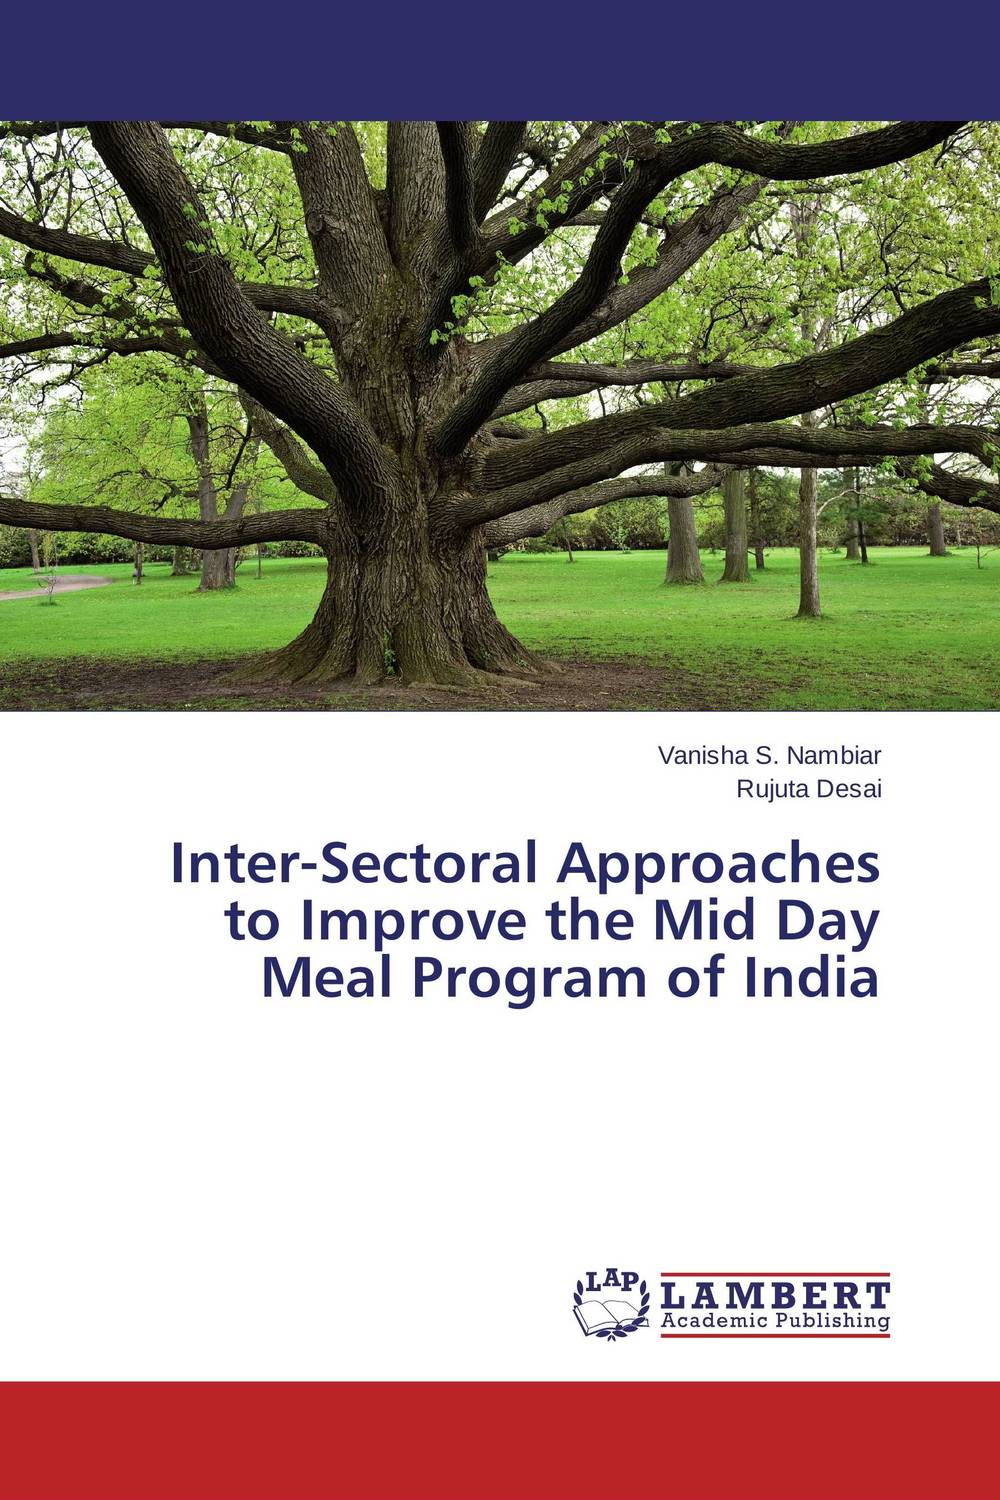 Inter-Sectoral Approaches to Improve the Mid Day Meal Program of India using crayfish waste meal and poultry offal meal in place of fishmeal